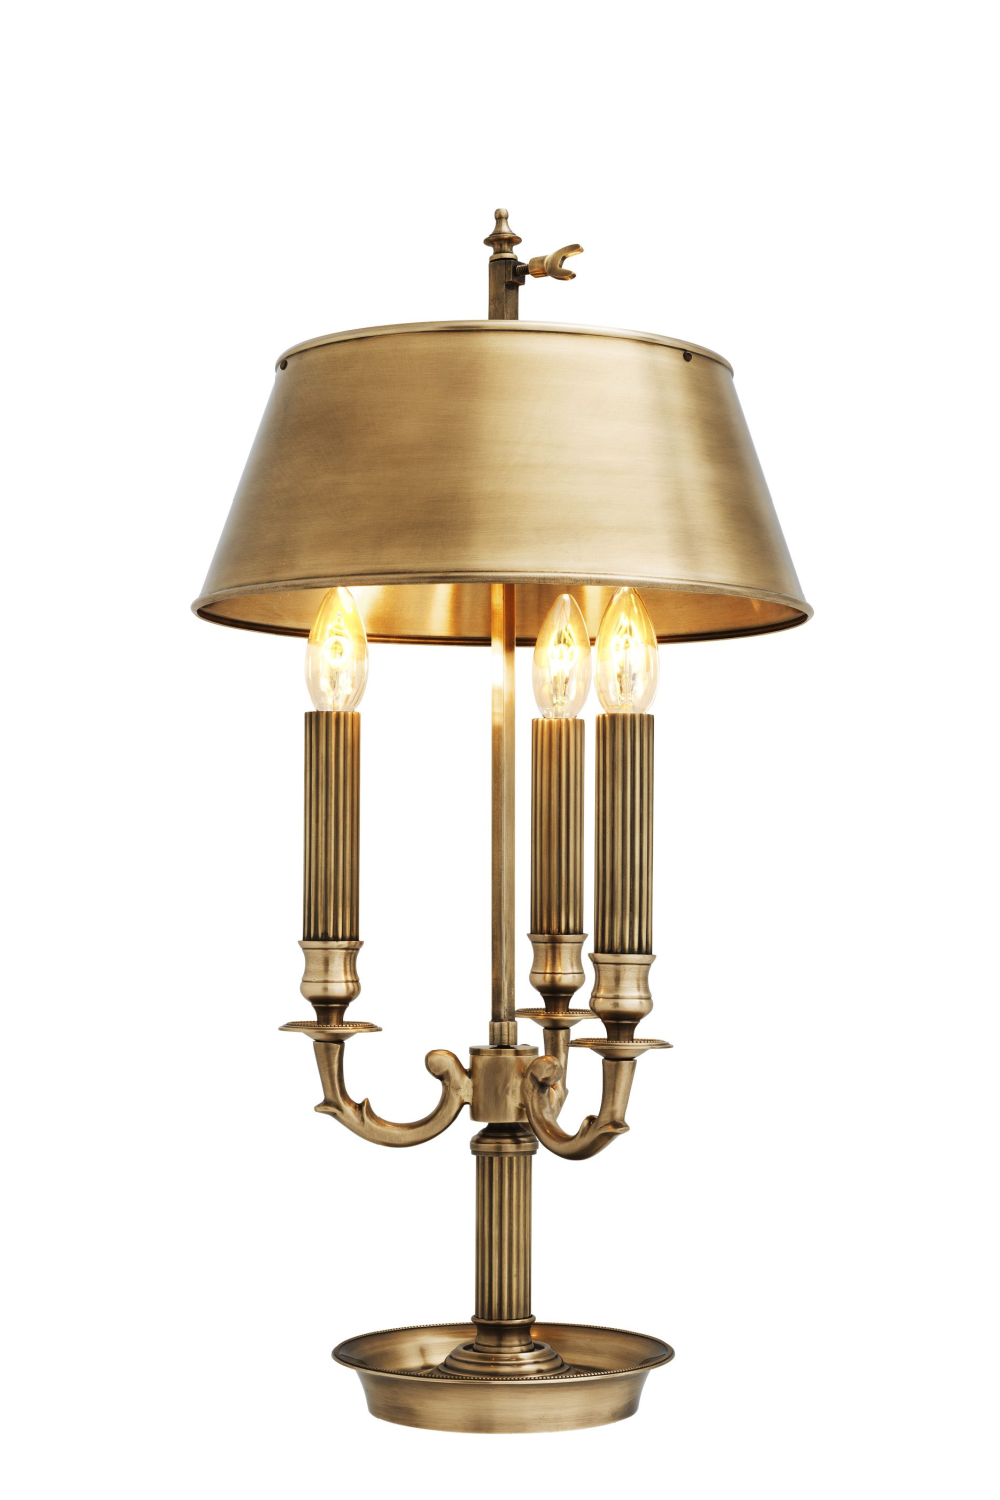 Antique Table Lamp | Eichholtz Deauville